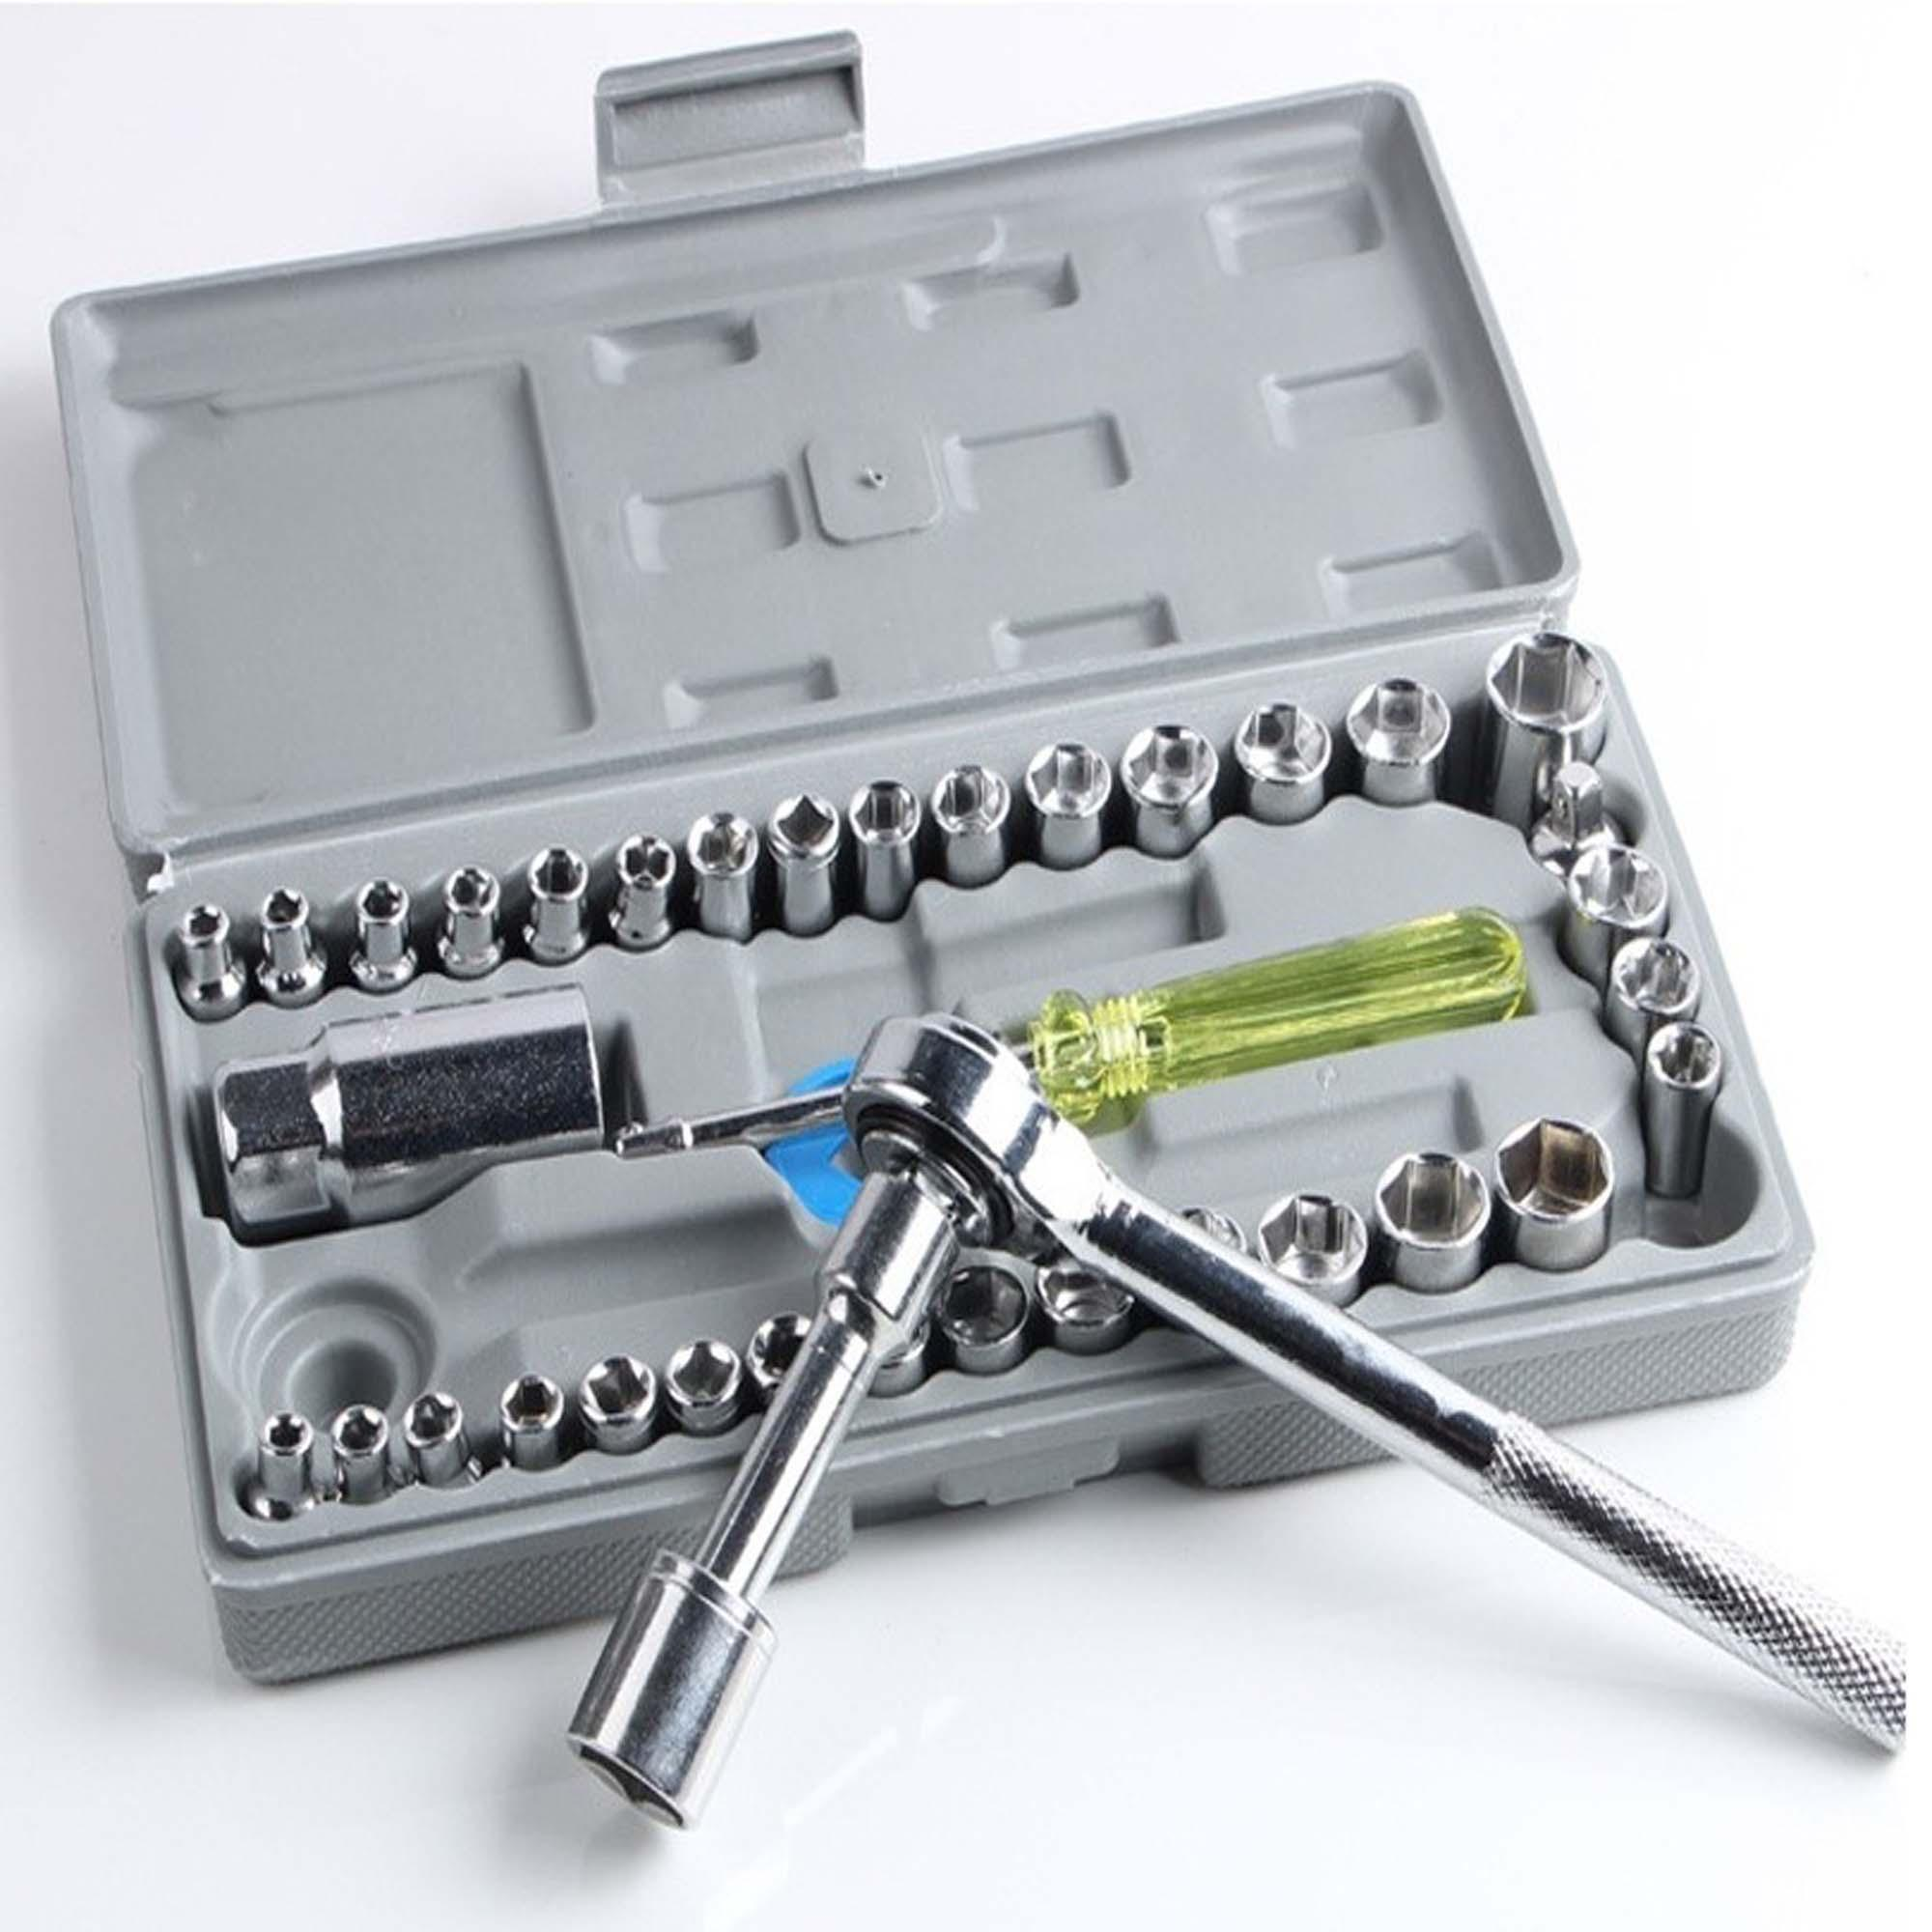 Tools Equipments Online In Pakistan House Wiring Aiwa 40 Pcs Tool Kit Set By Meerubs Collections Original